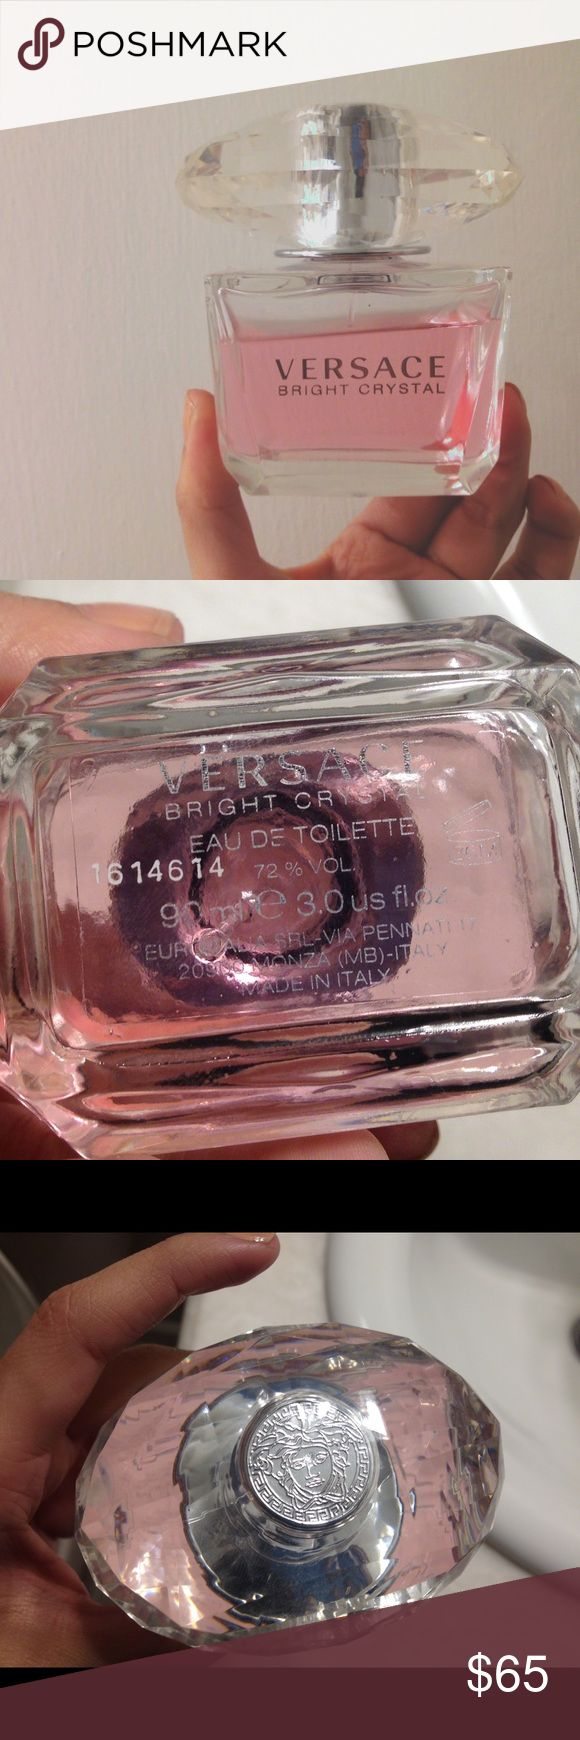 V e r s a c e Bright Crystal 3.0 oz 10% used got a month ago. Authentic 90ml 3.0 oz Versace Other